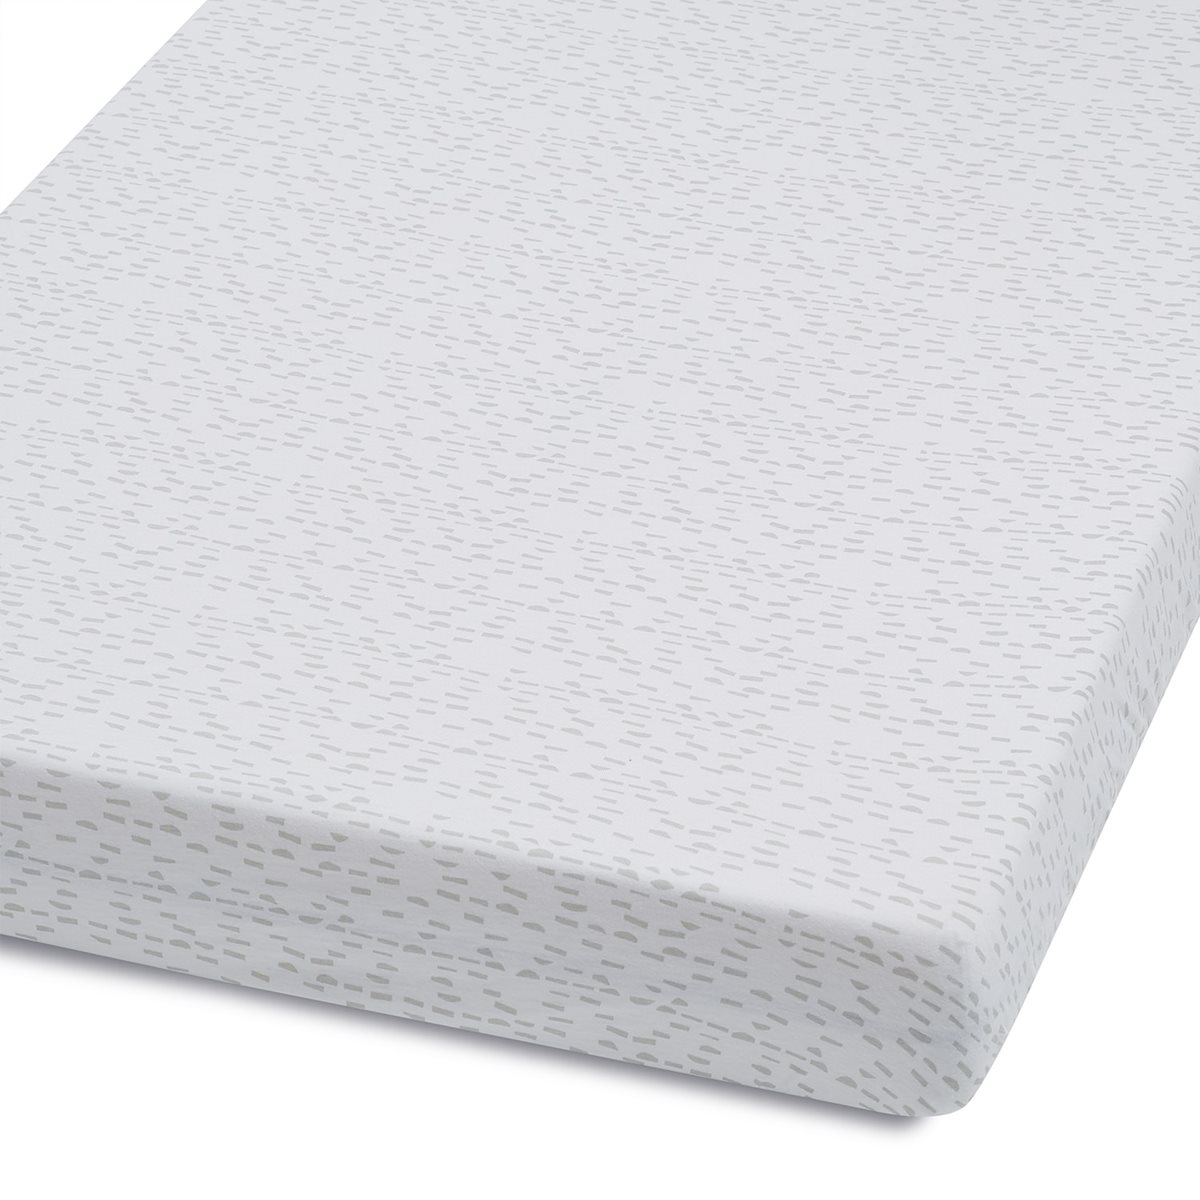 Cot U0026 Cot Bed Fitted Sheet In Wave Mono Dash | Snuz | Snüz